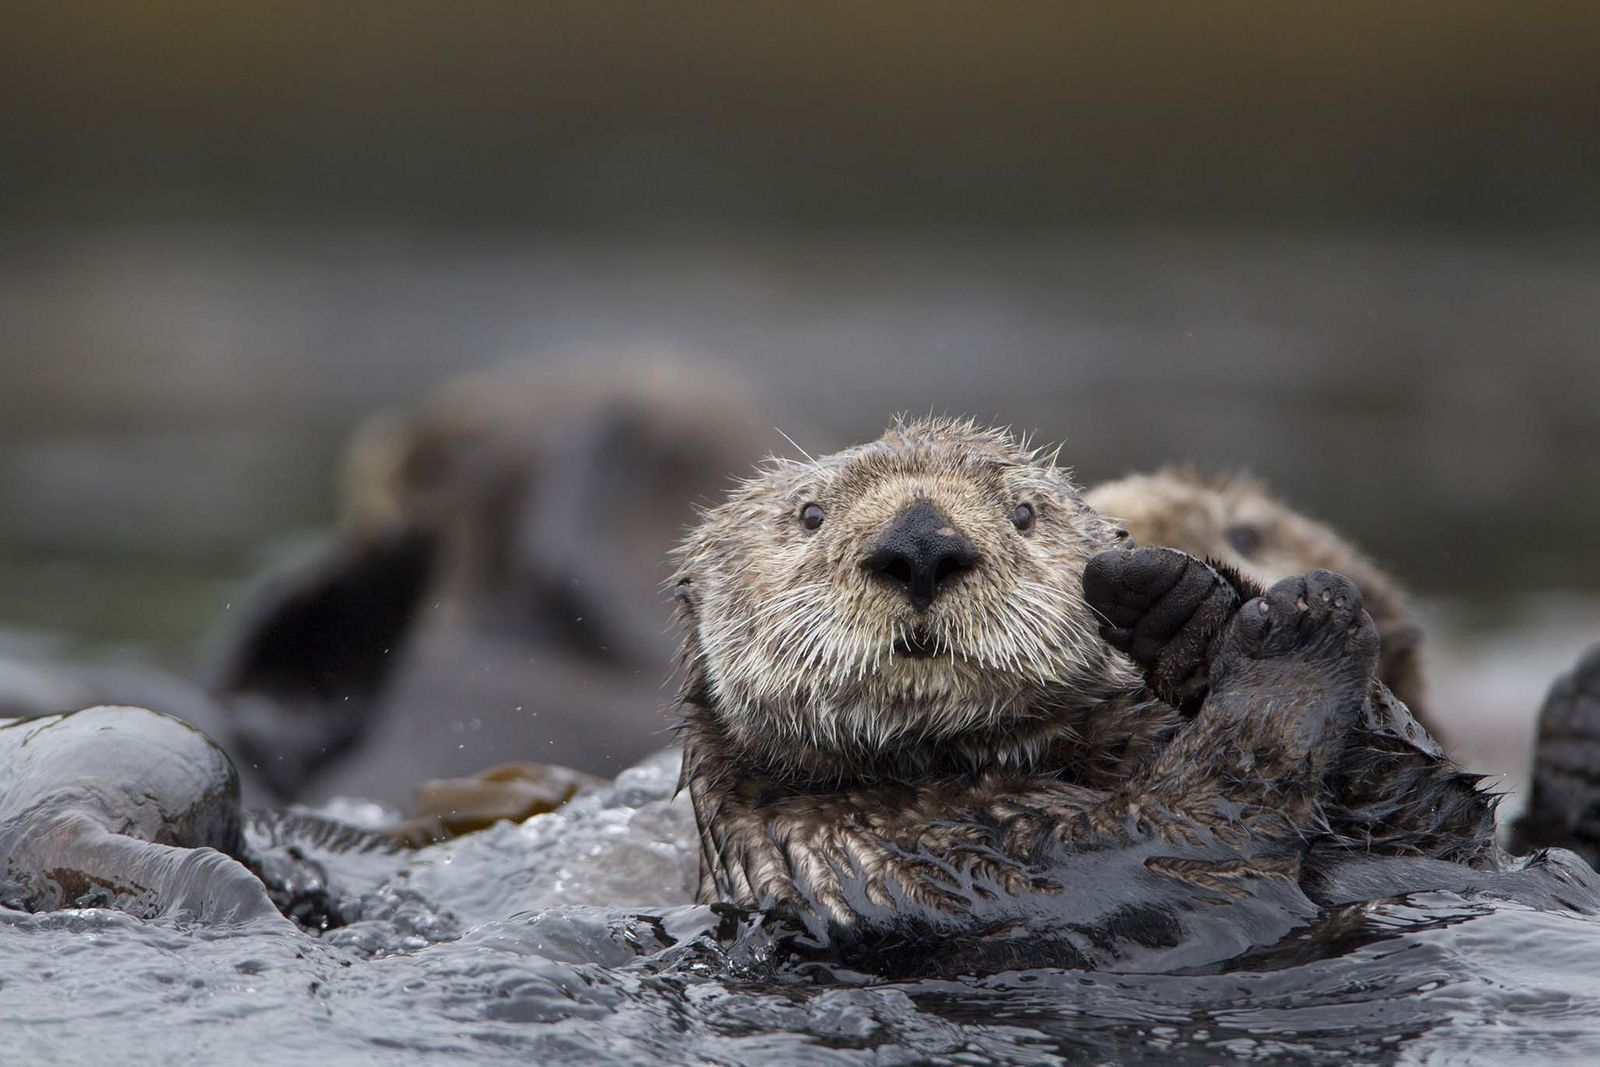 Sea otters use tools, too. Now scientists look at their 'archaeology'